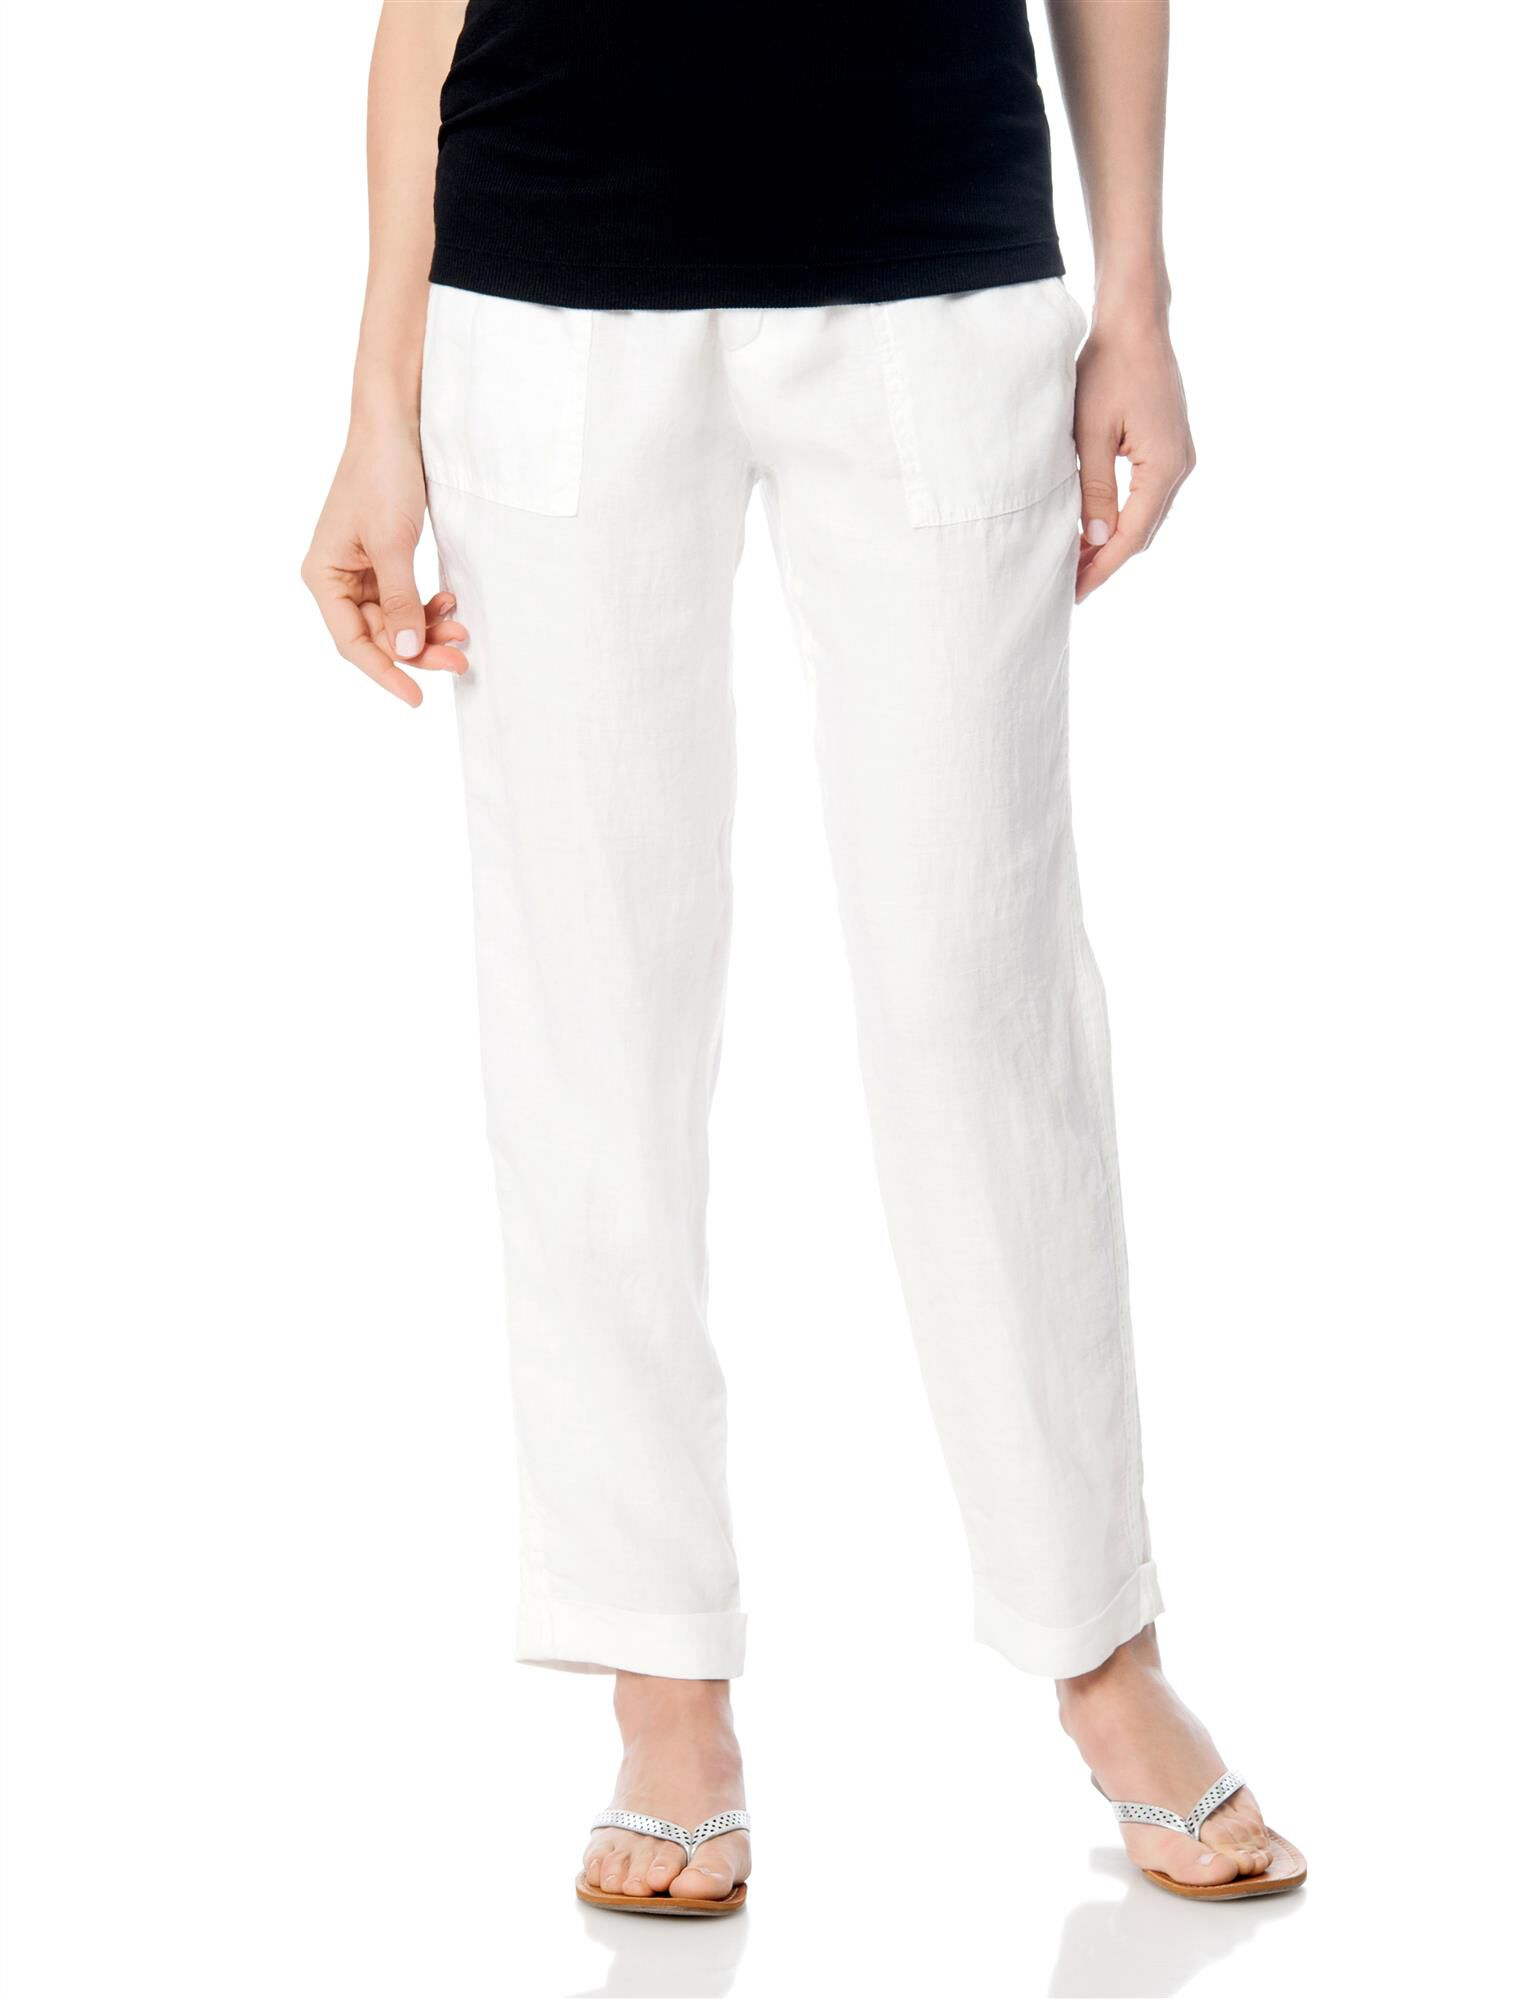 Pull On Style Linen Straight Leg Maternity Pants